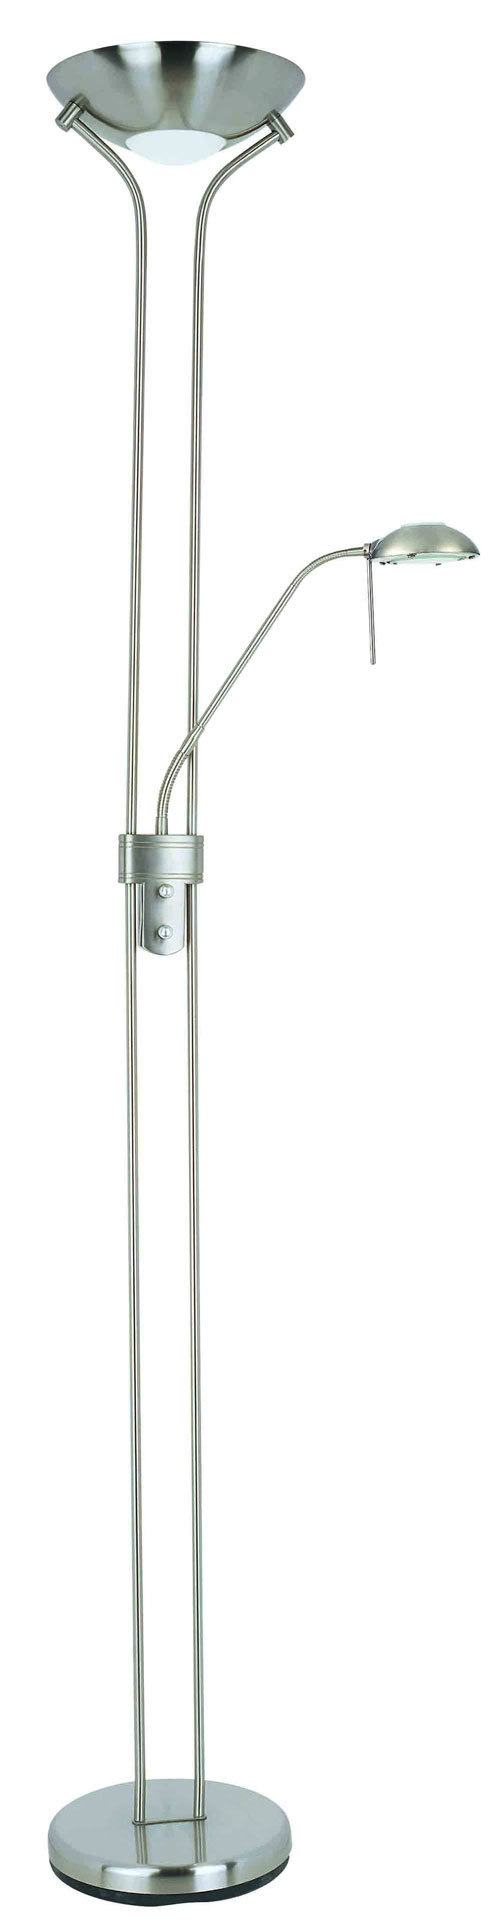 Puzzled floor lamp not working detailing world for Halogen floor lamp stopped working